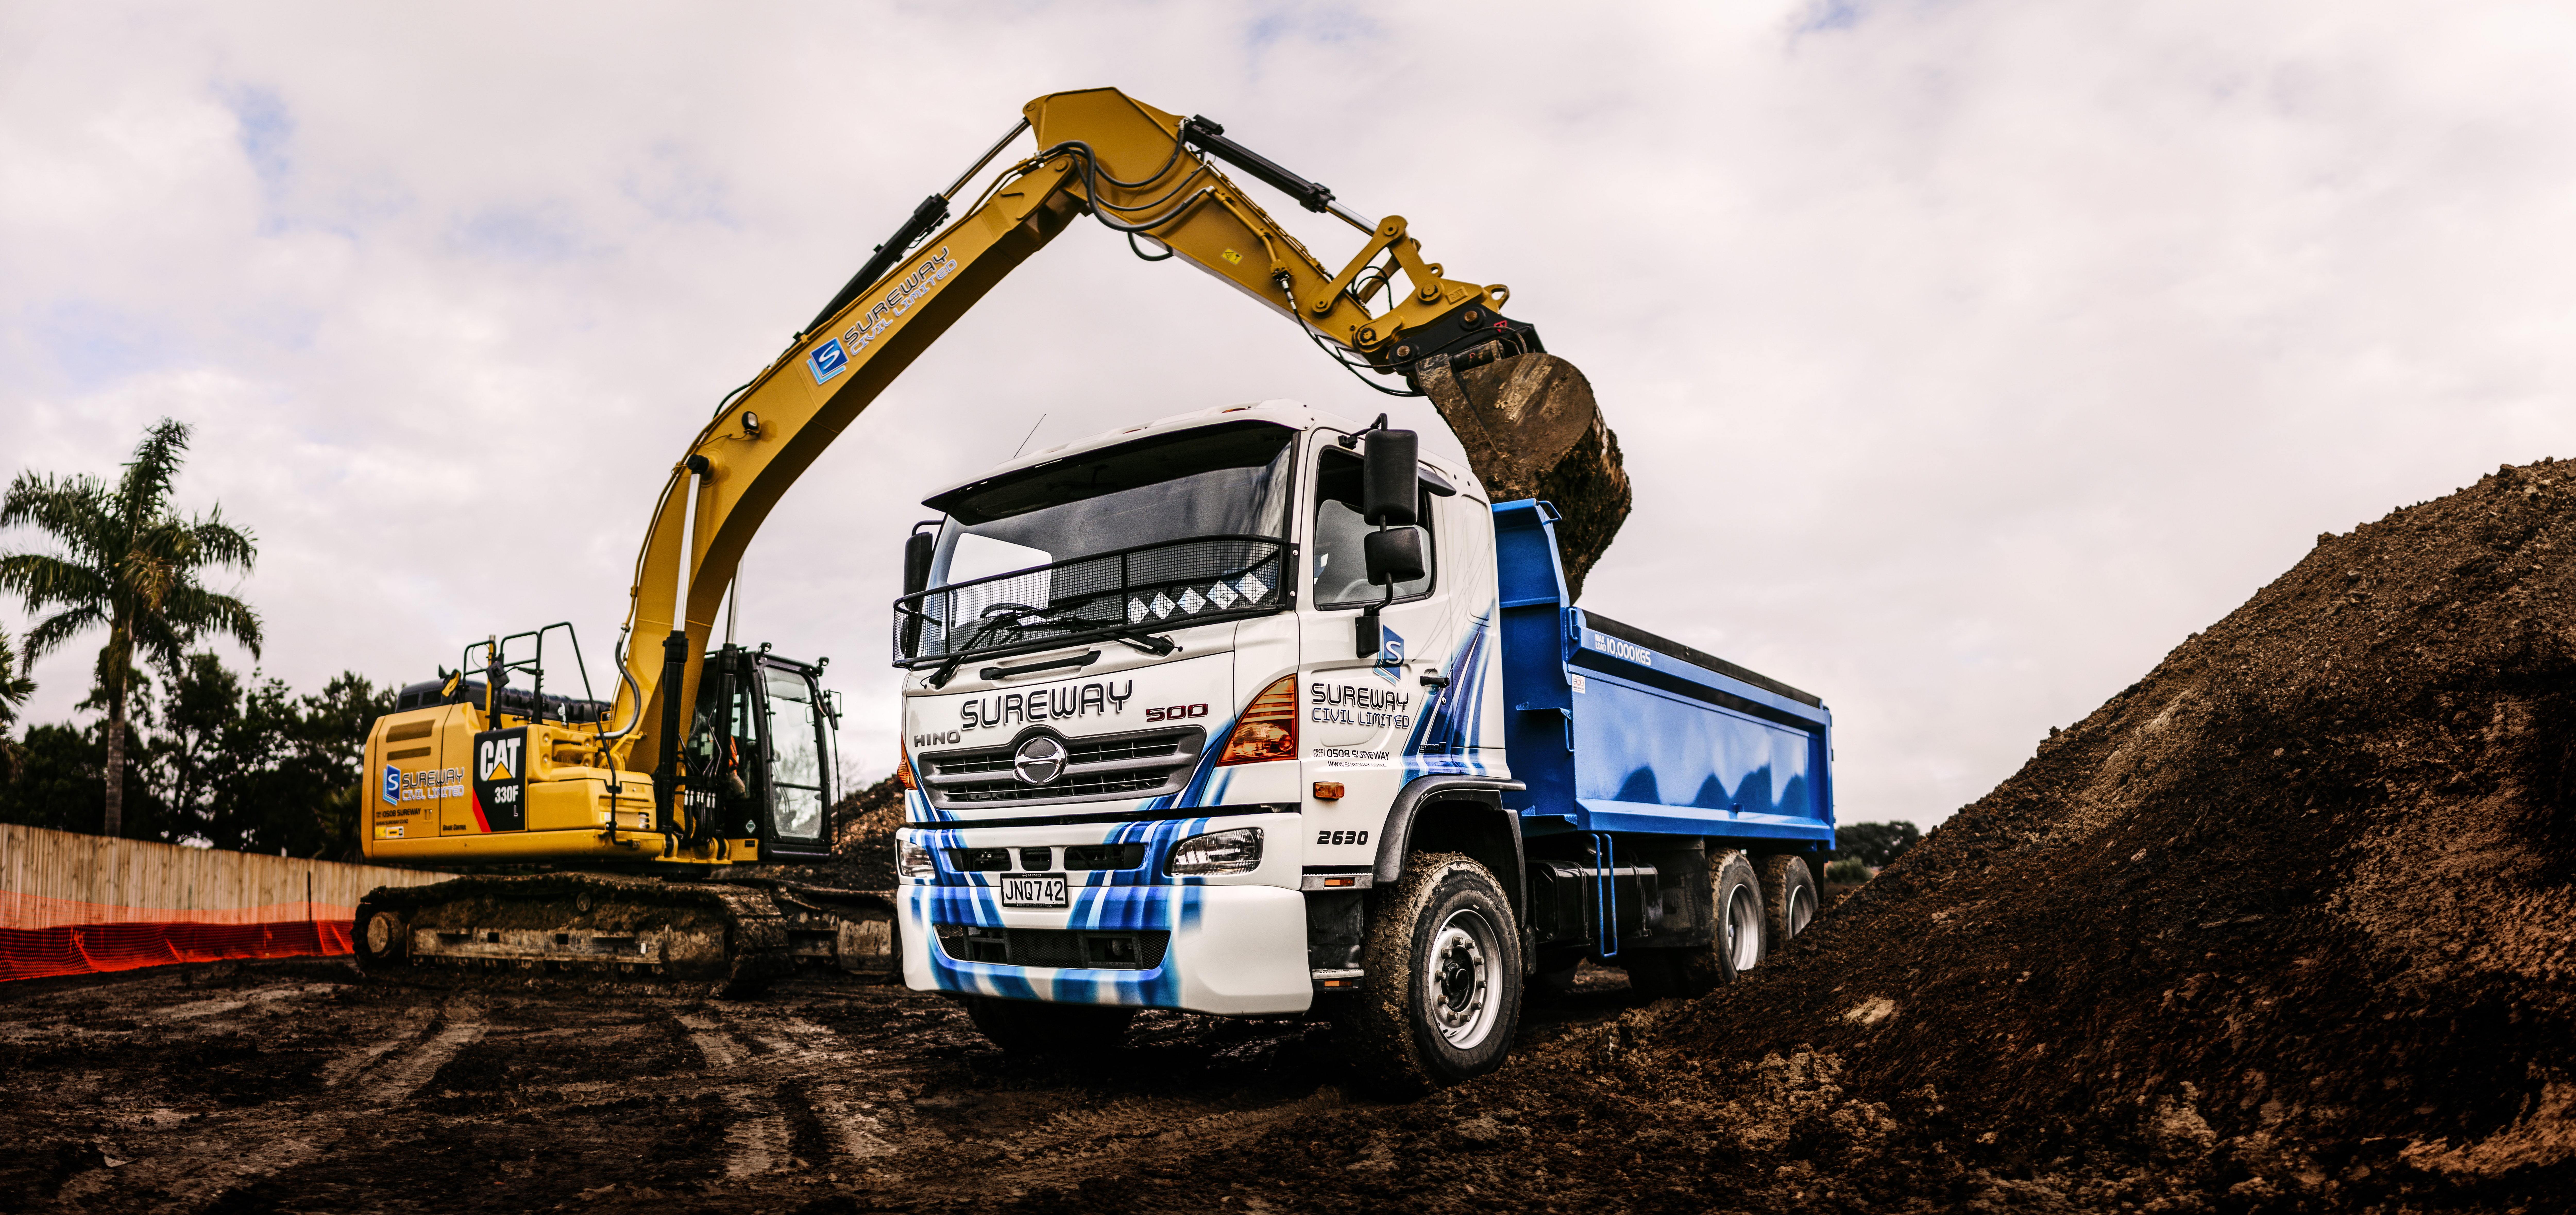 Sureway Civil Ltd - 500 Series 6x4 Tipper